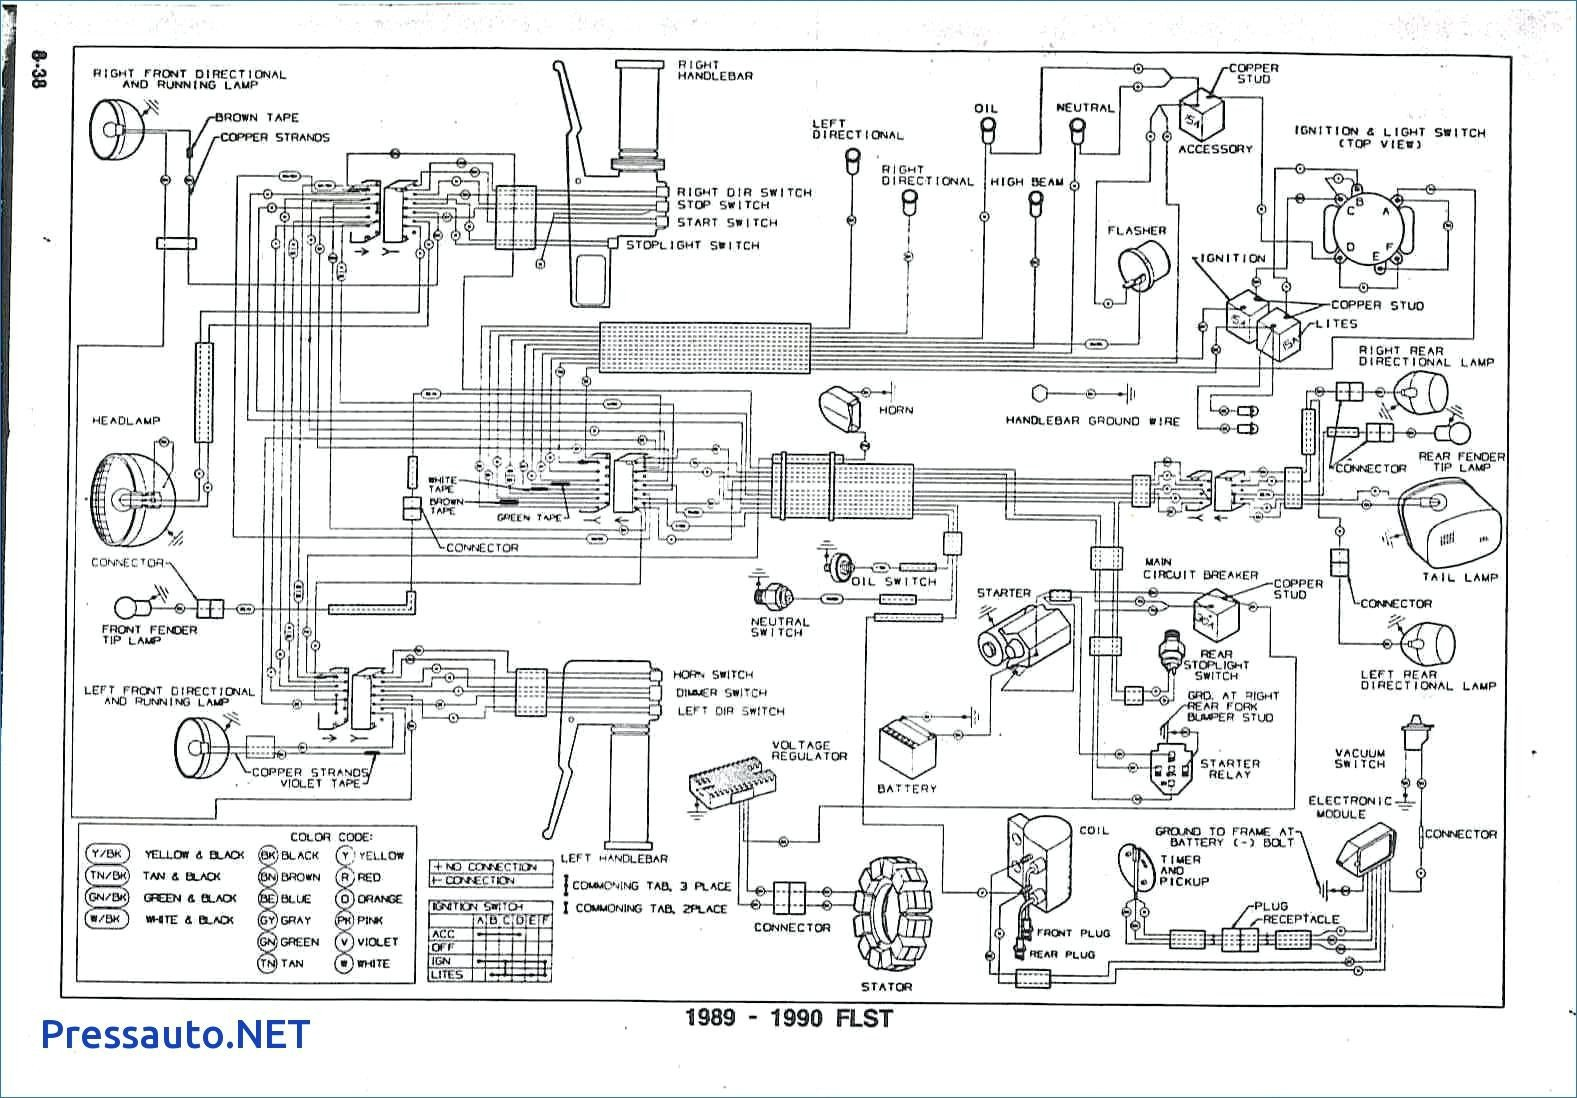 Harley Flh Wire Harness Blog Wiring Diagram Harley Flh Wiring Harness Diagram